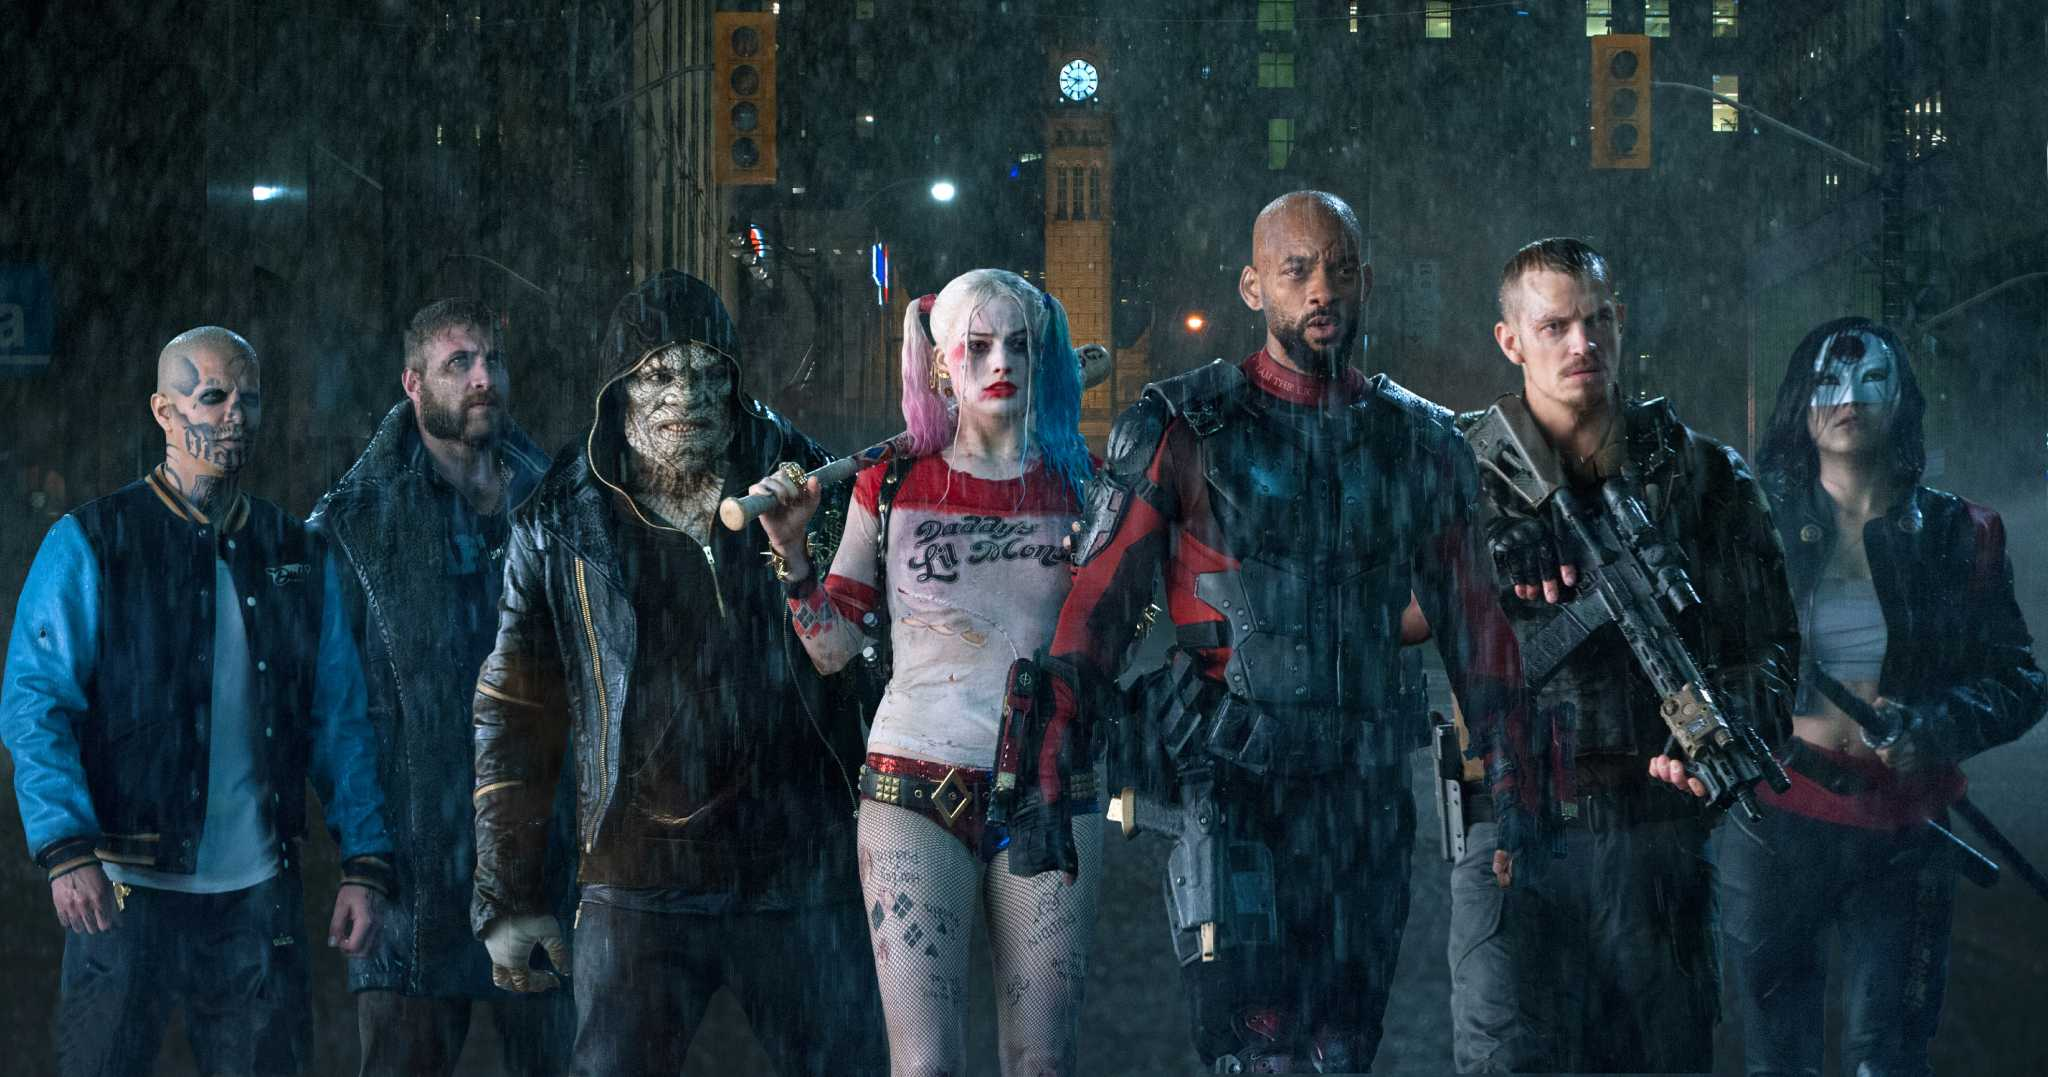 If the Suicide Squad had cars, this is what they might look like